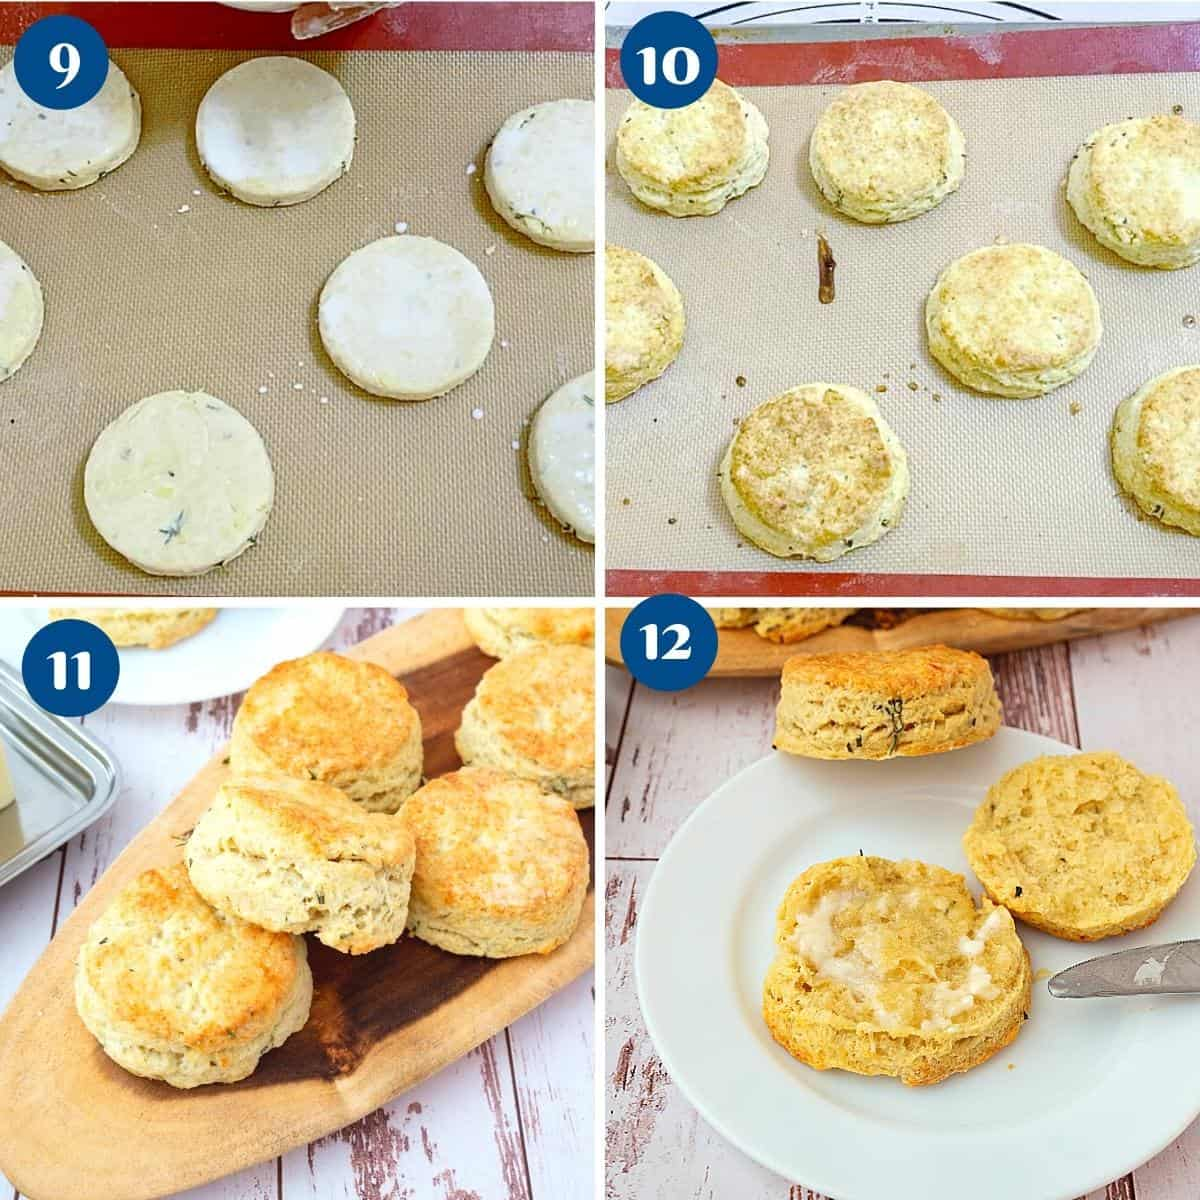 Progress pictures baking the biscuits with cheddar cheese.